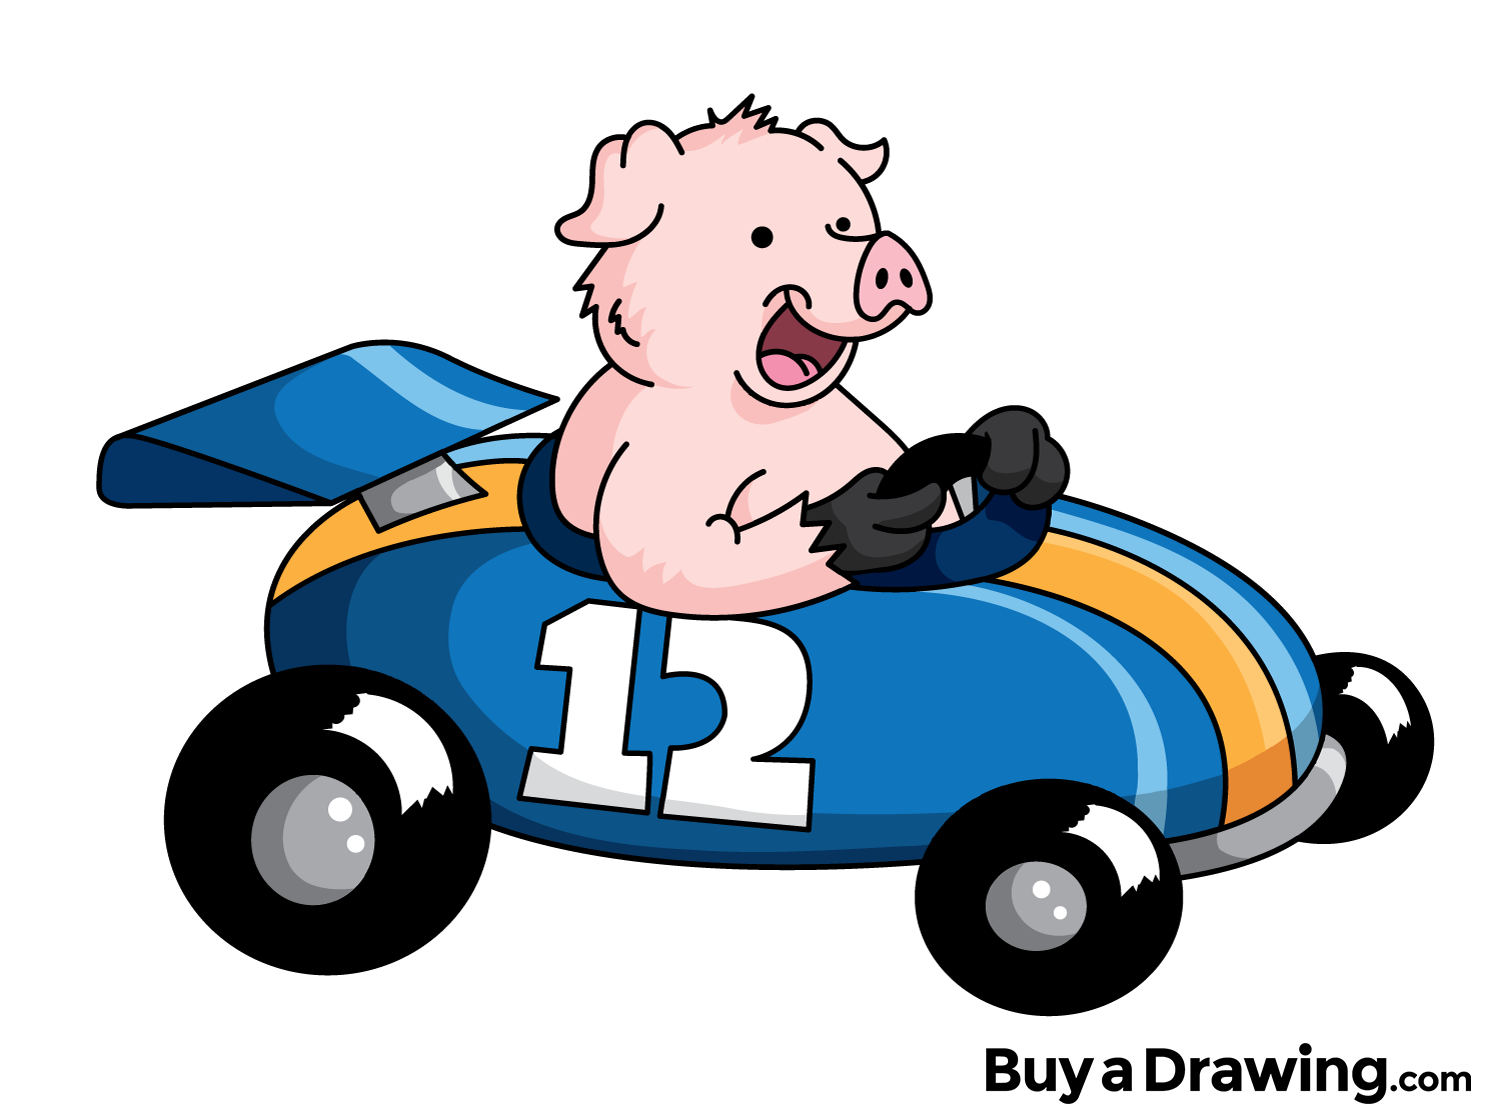 Indy race car clipart clip free library A cartoon pig in a race car that I drew for the heck of it. #pig ... clip free library